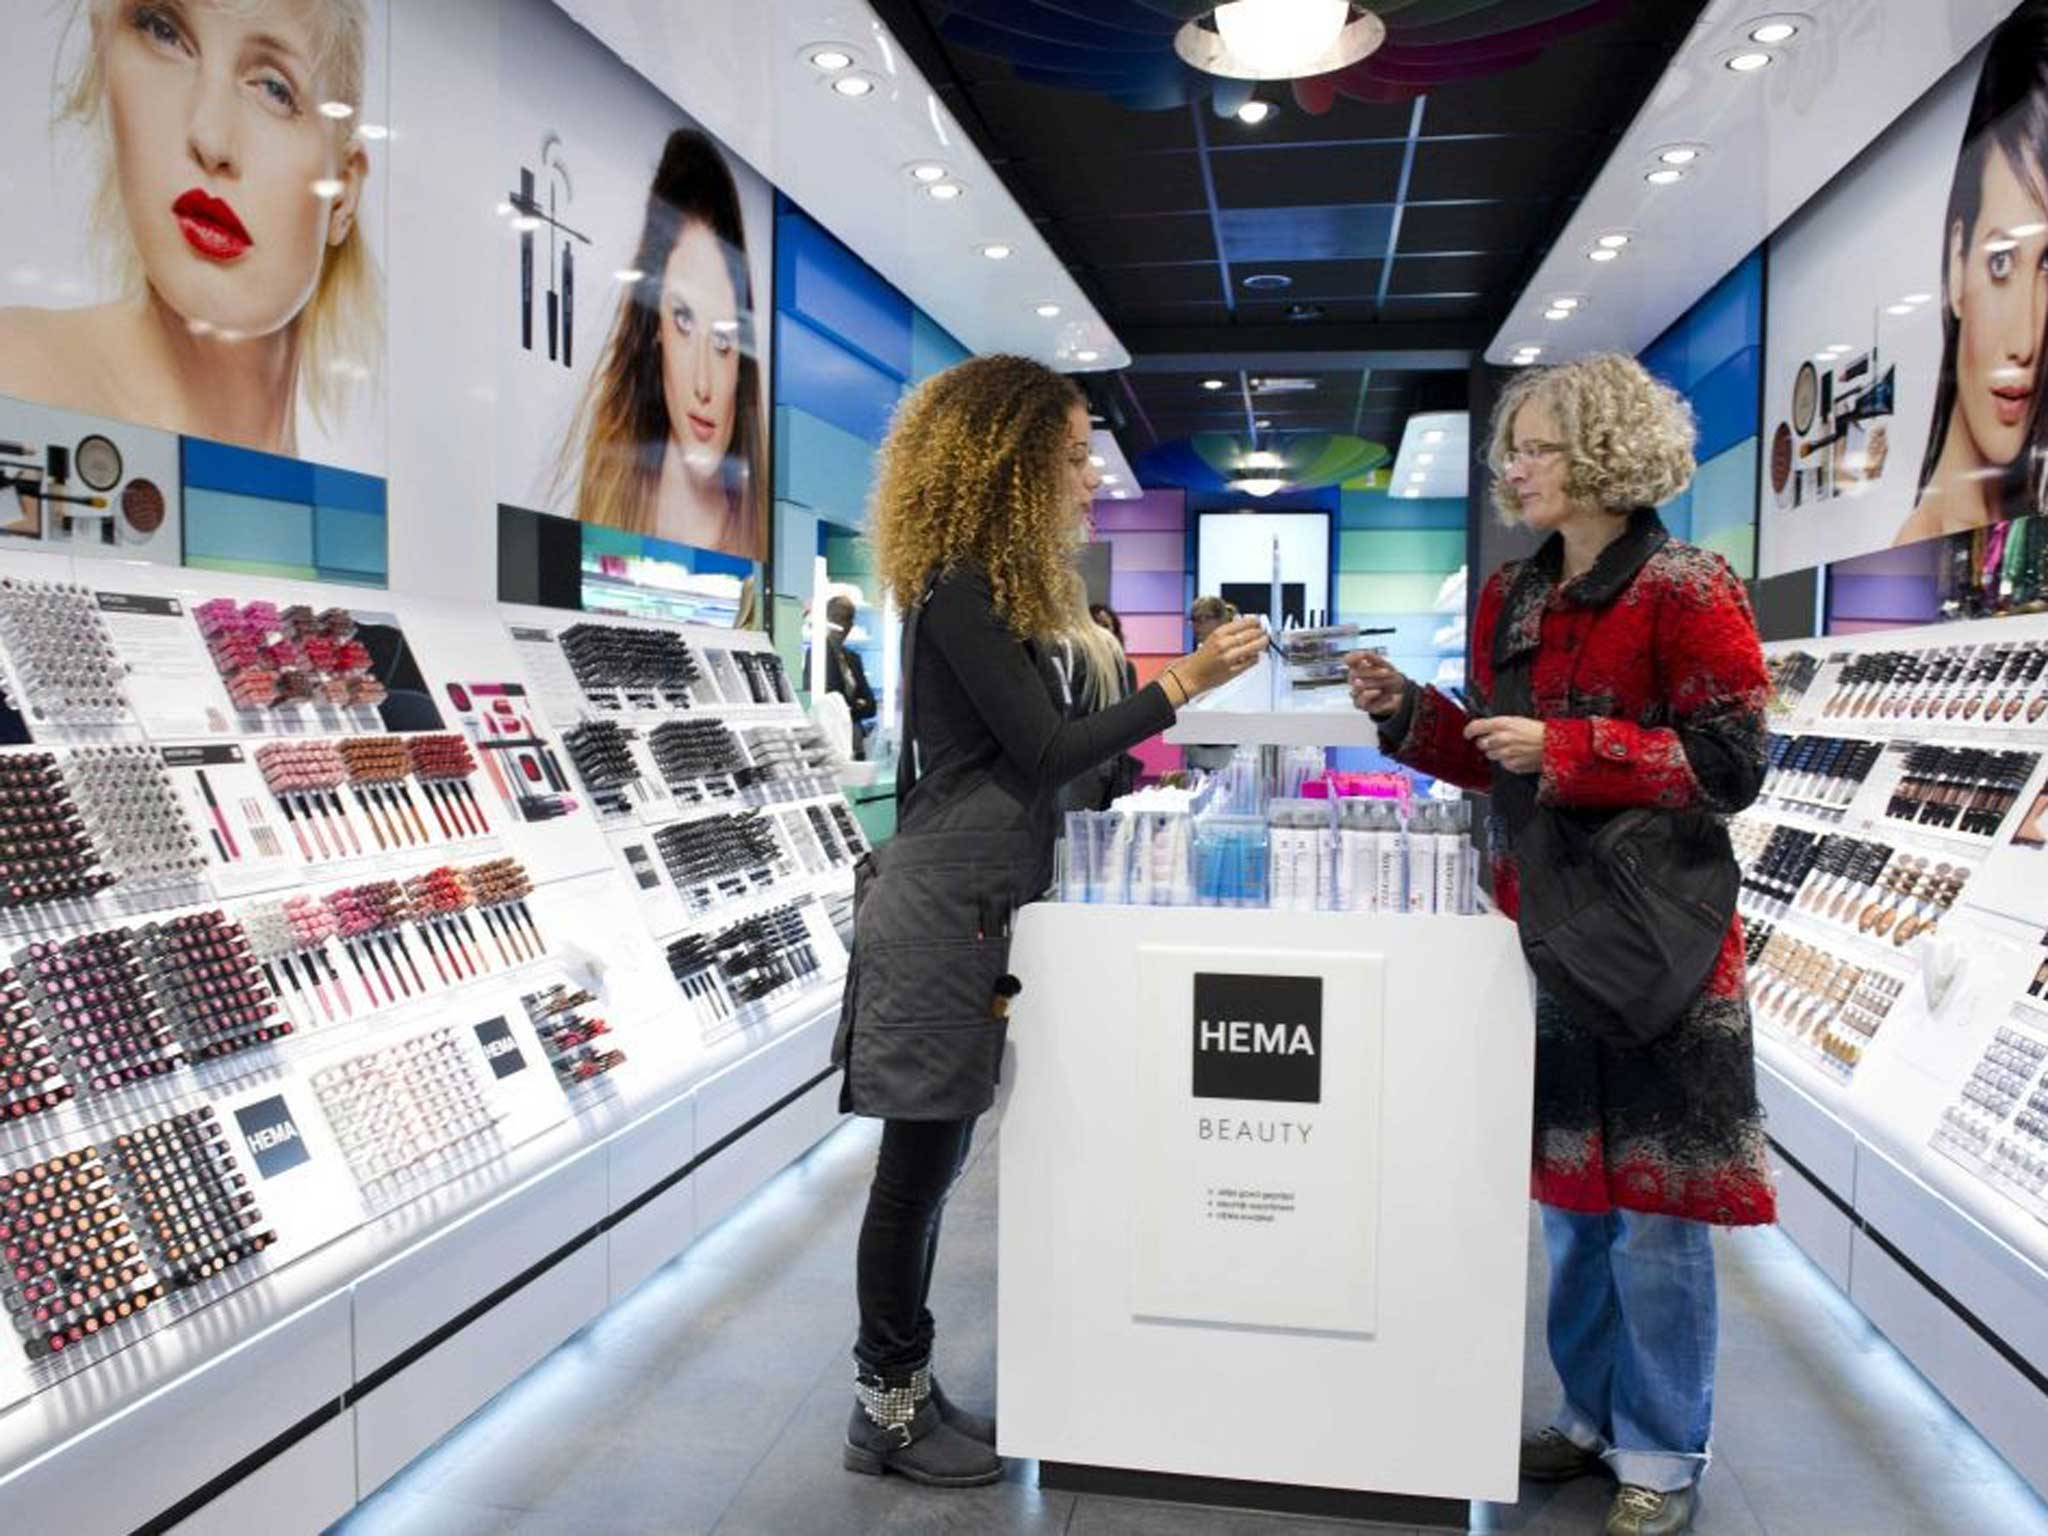 Hema arrives in Britain: A trip to the shop will soon mean